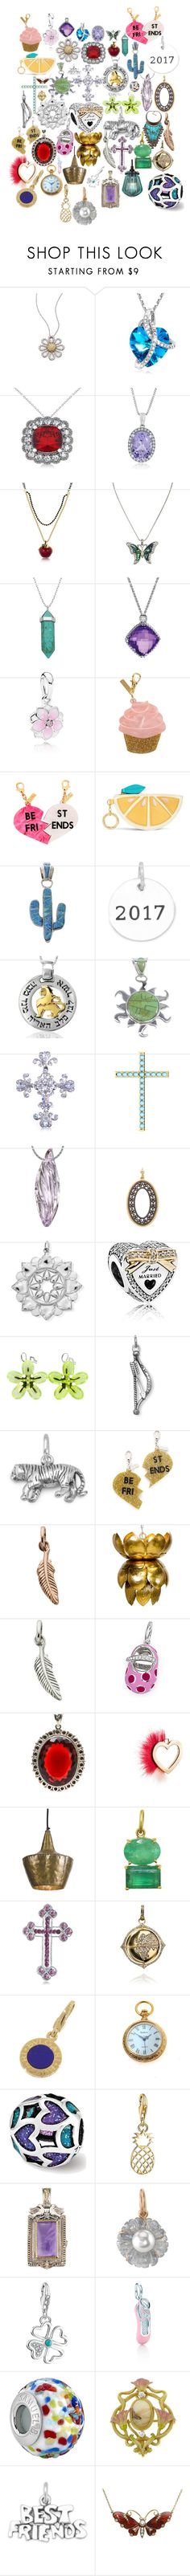 """Pendants"" by rumagurl ❤ liked on Polyvore featuring Roberto Coin, Allurez, Disney, Lord & Taylor, David Yurman, Pandora, Edie Parker, Vera Bradley, Naomi Sarna and Armenta"